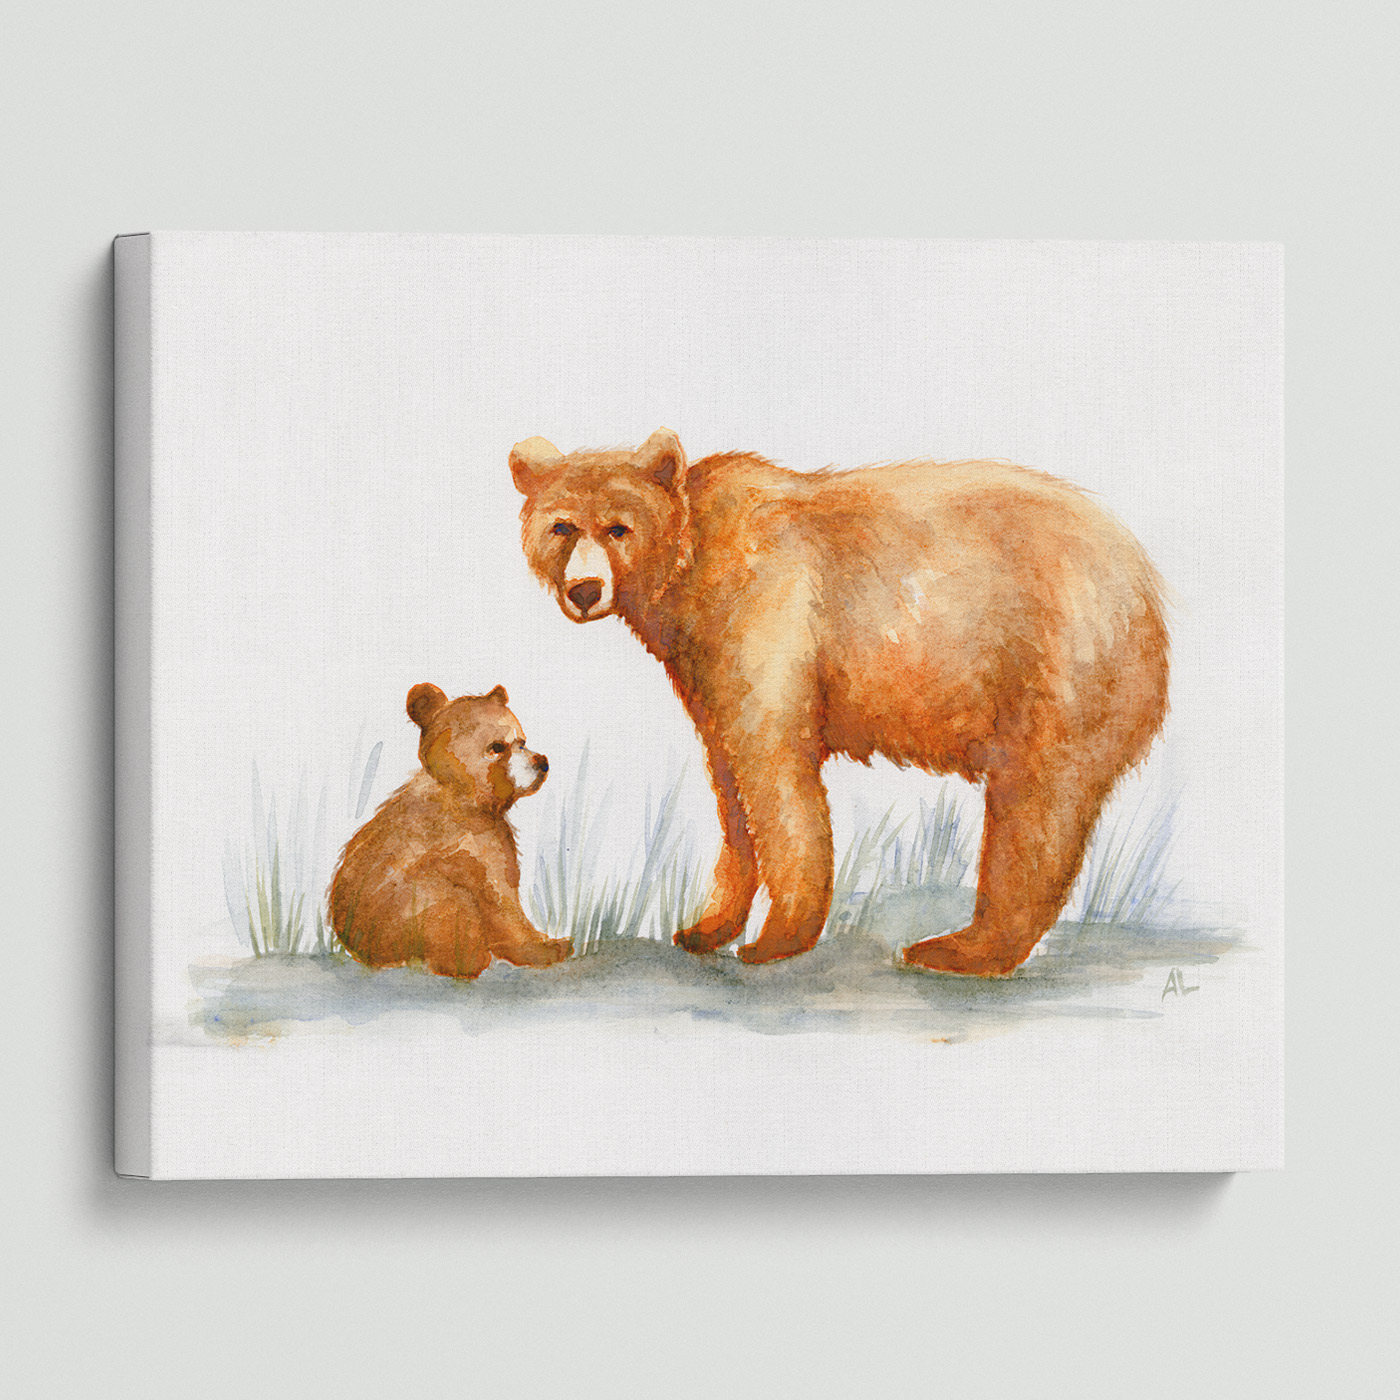 Water-colour print of A mama and baby cub.